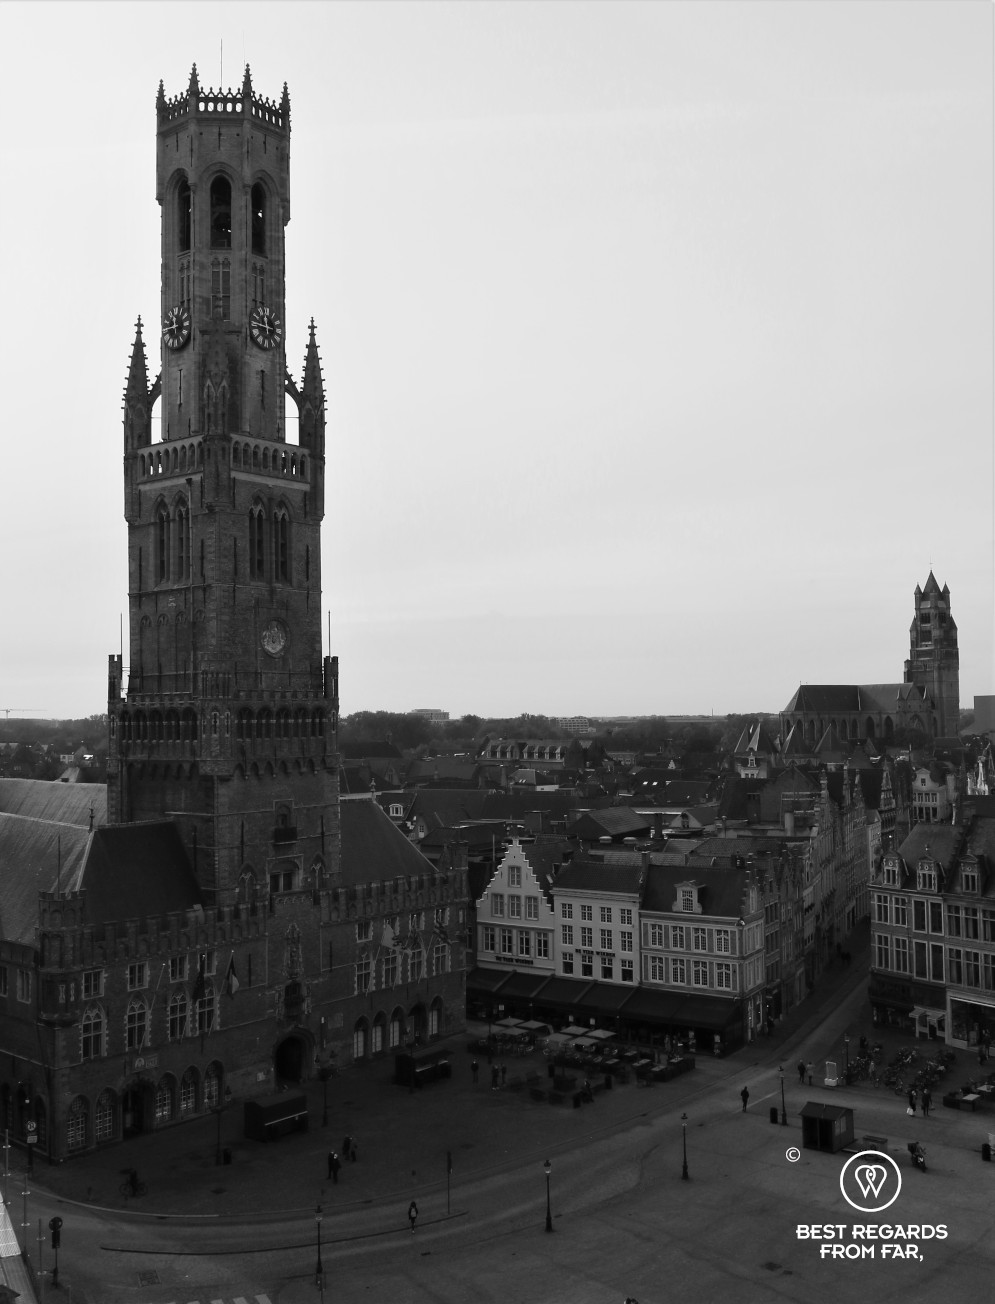 The medieval Belfry of Bruges on the Market Square, Belgium